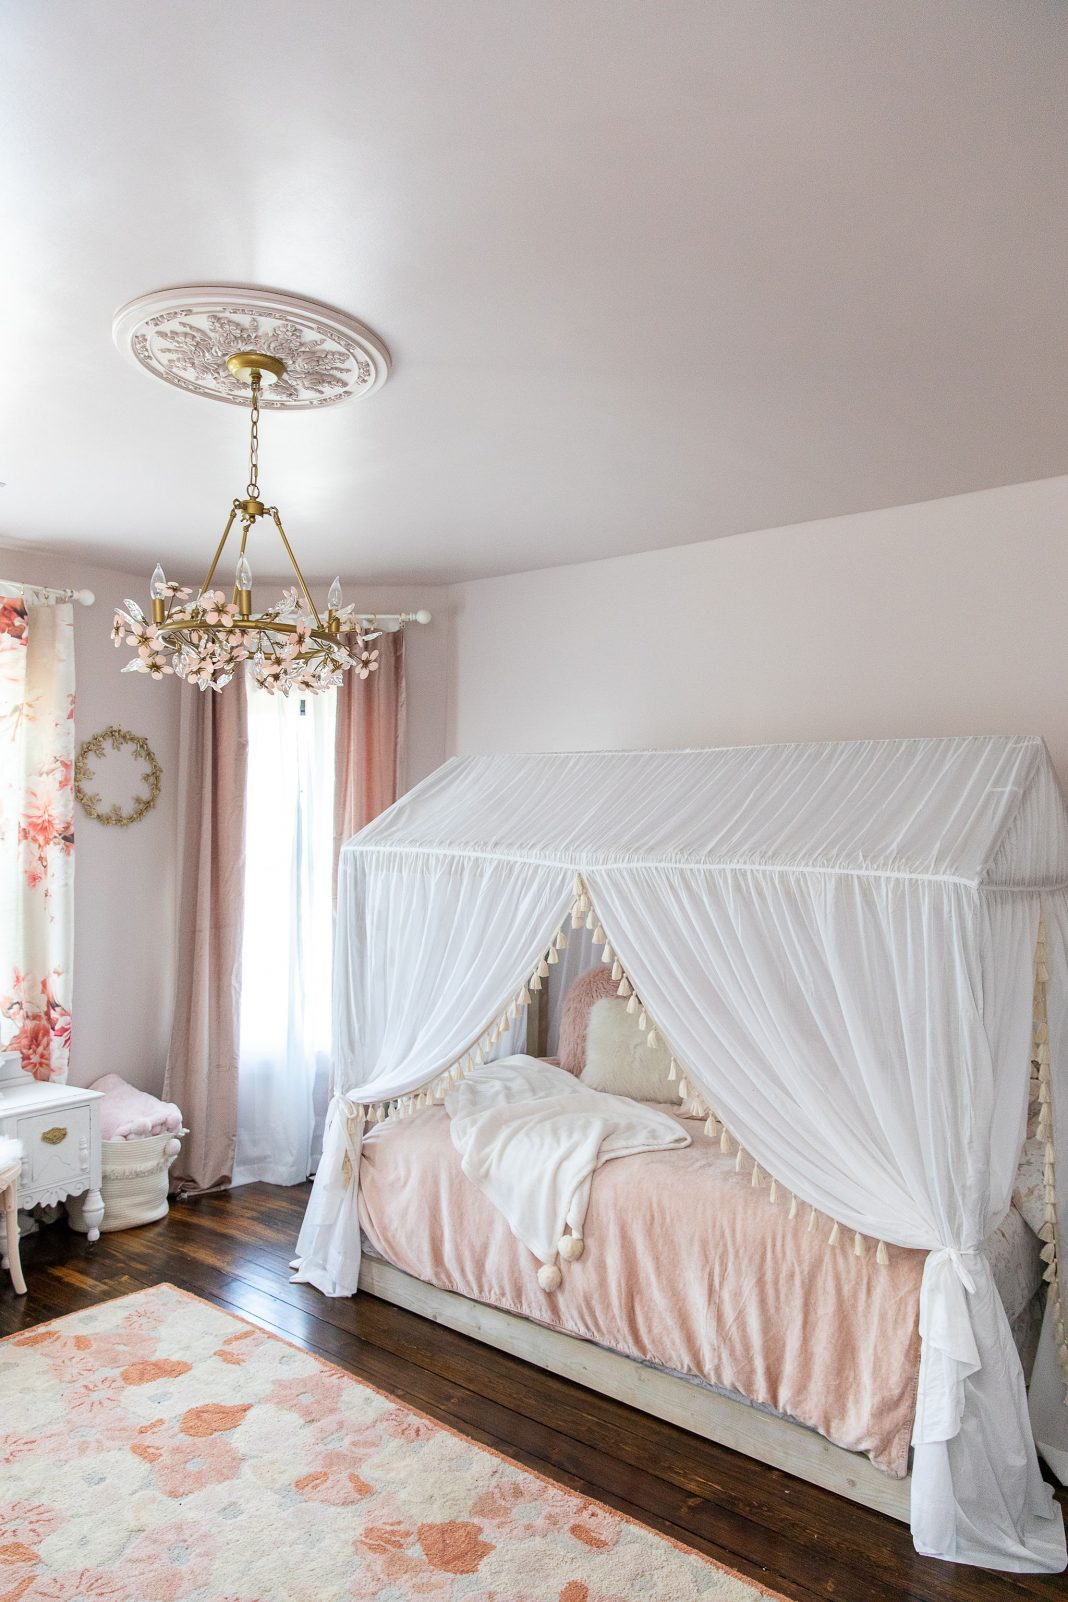 Muted pinks & nude tones + mature floral patterns are the perfect